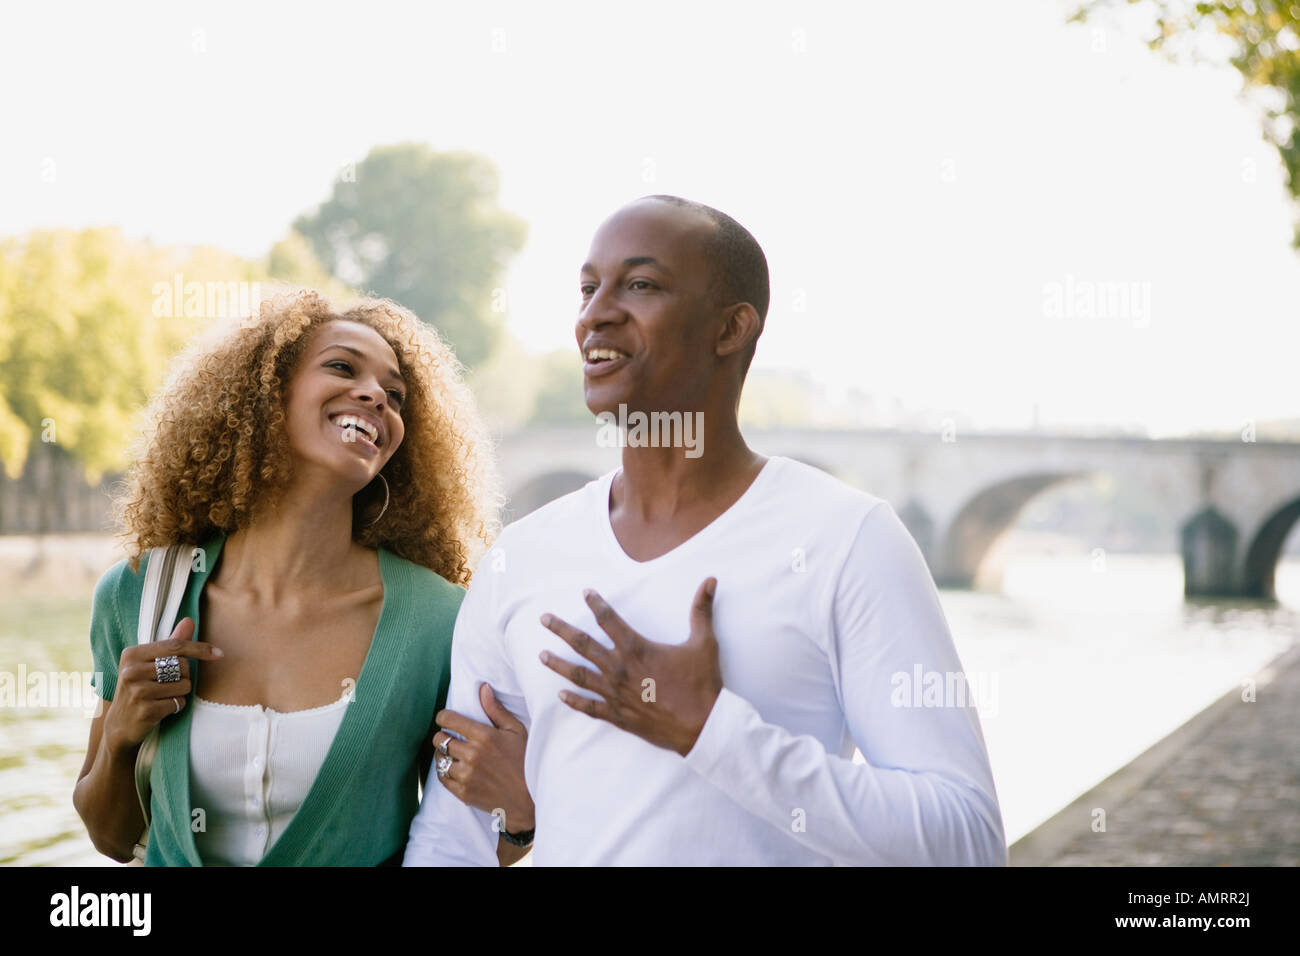 African couple laughing - Stock Image